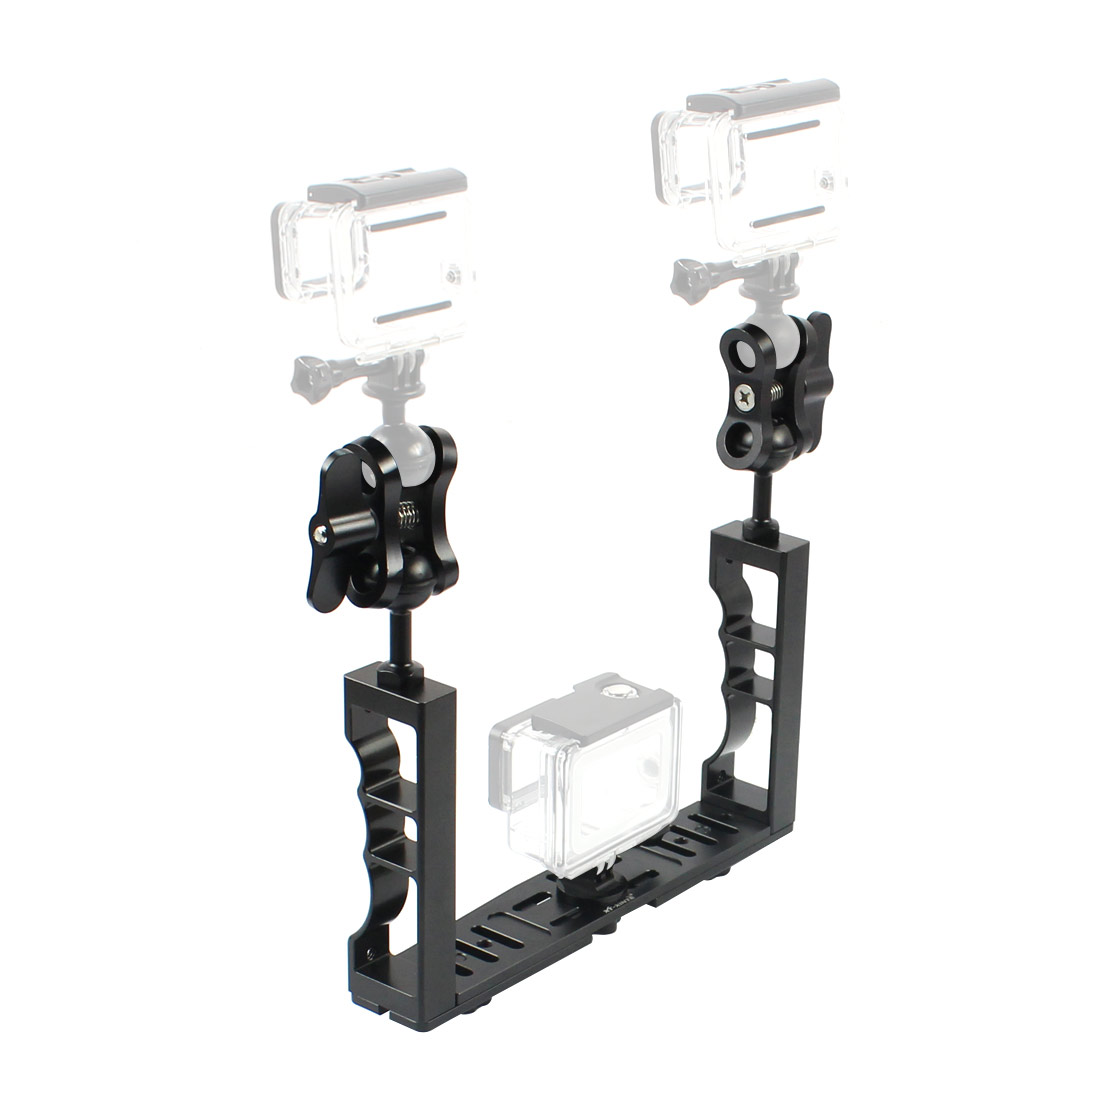 Aluminum Alloy Underwater Waterproof Shell Tray Housings Arm  Holder Double Grip Dive  for Gopro Action Camera AccessoryAluminum Alloy Underwater Waterproof Shell Tray Housings Arm  Holder Double Grip Dive  for Gopro Action Camera Accessory